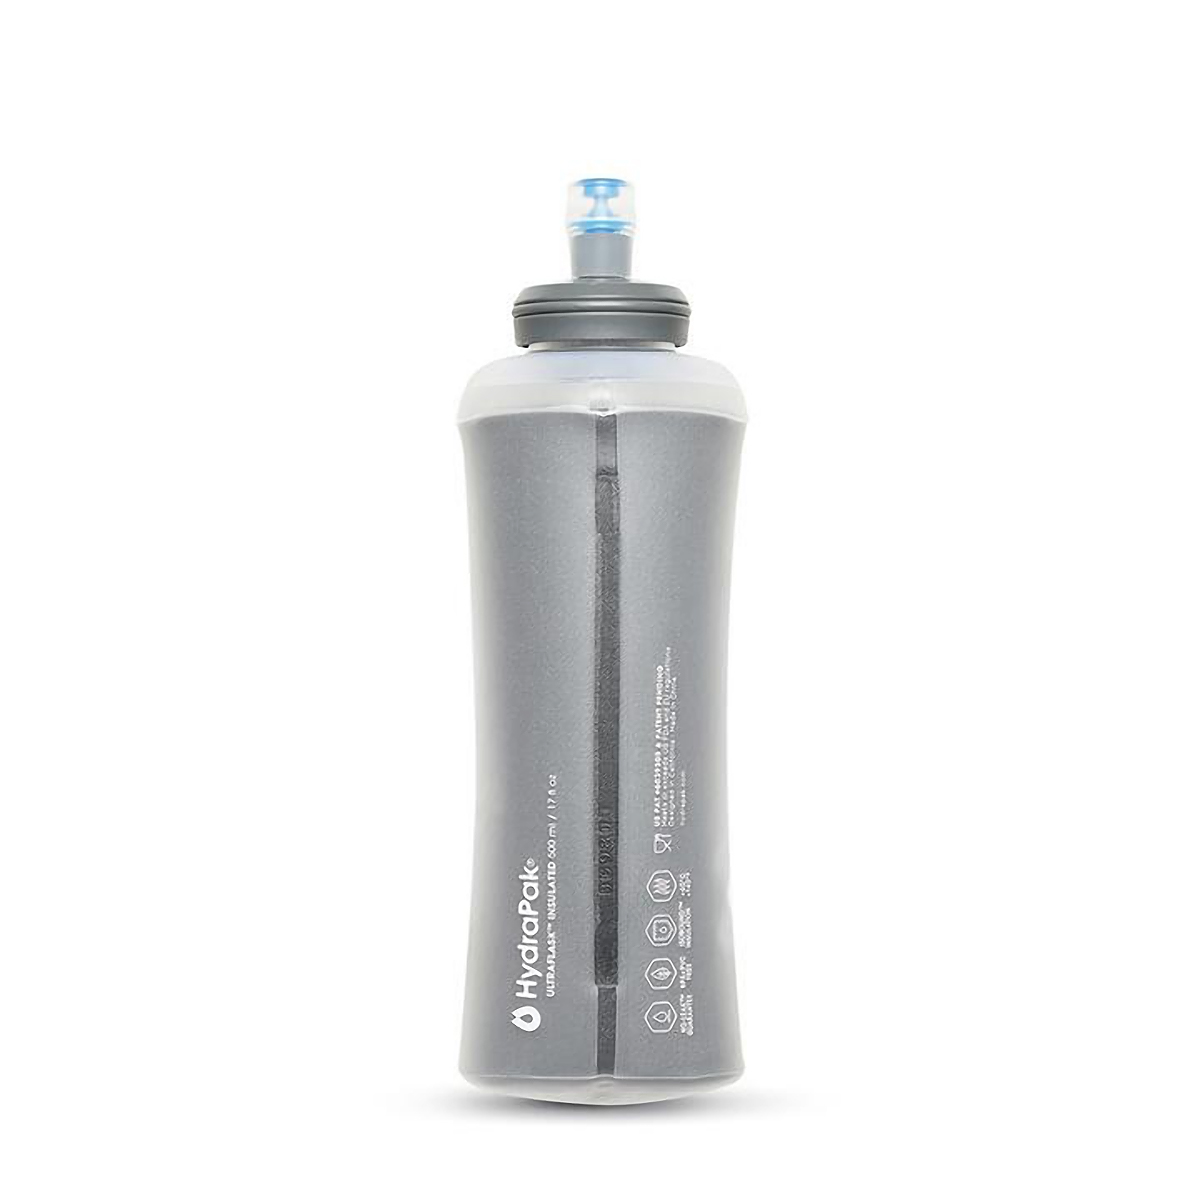 Hydrapak UltraFlask IT 500 mL Insulated Water Bottle - Color: Grey - Size: One Size, Grey, large, image 3